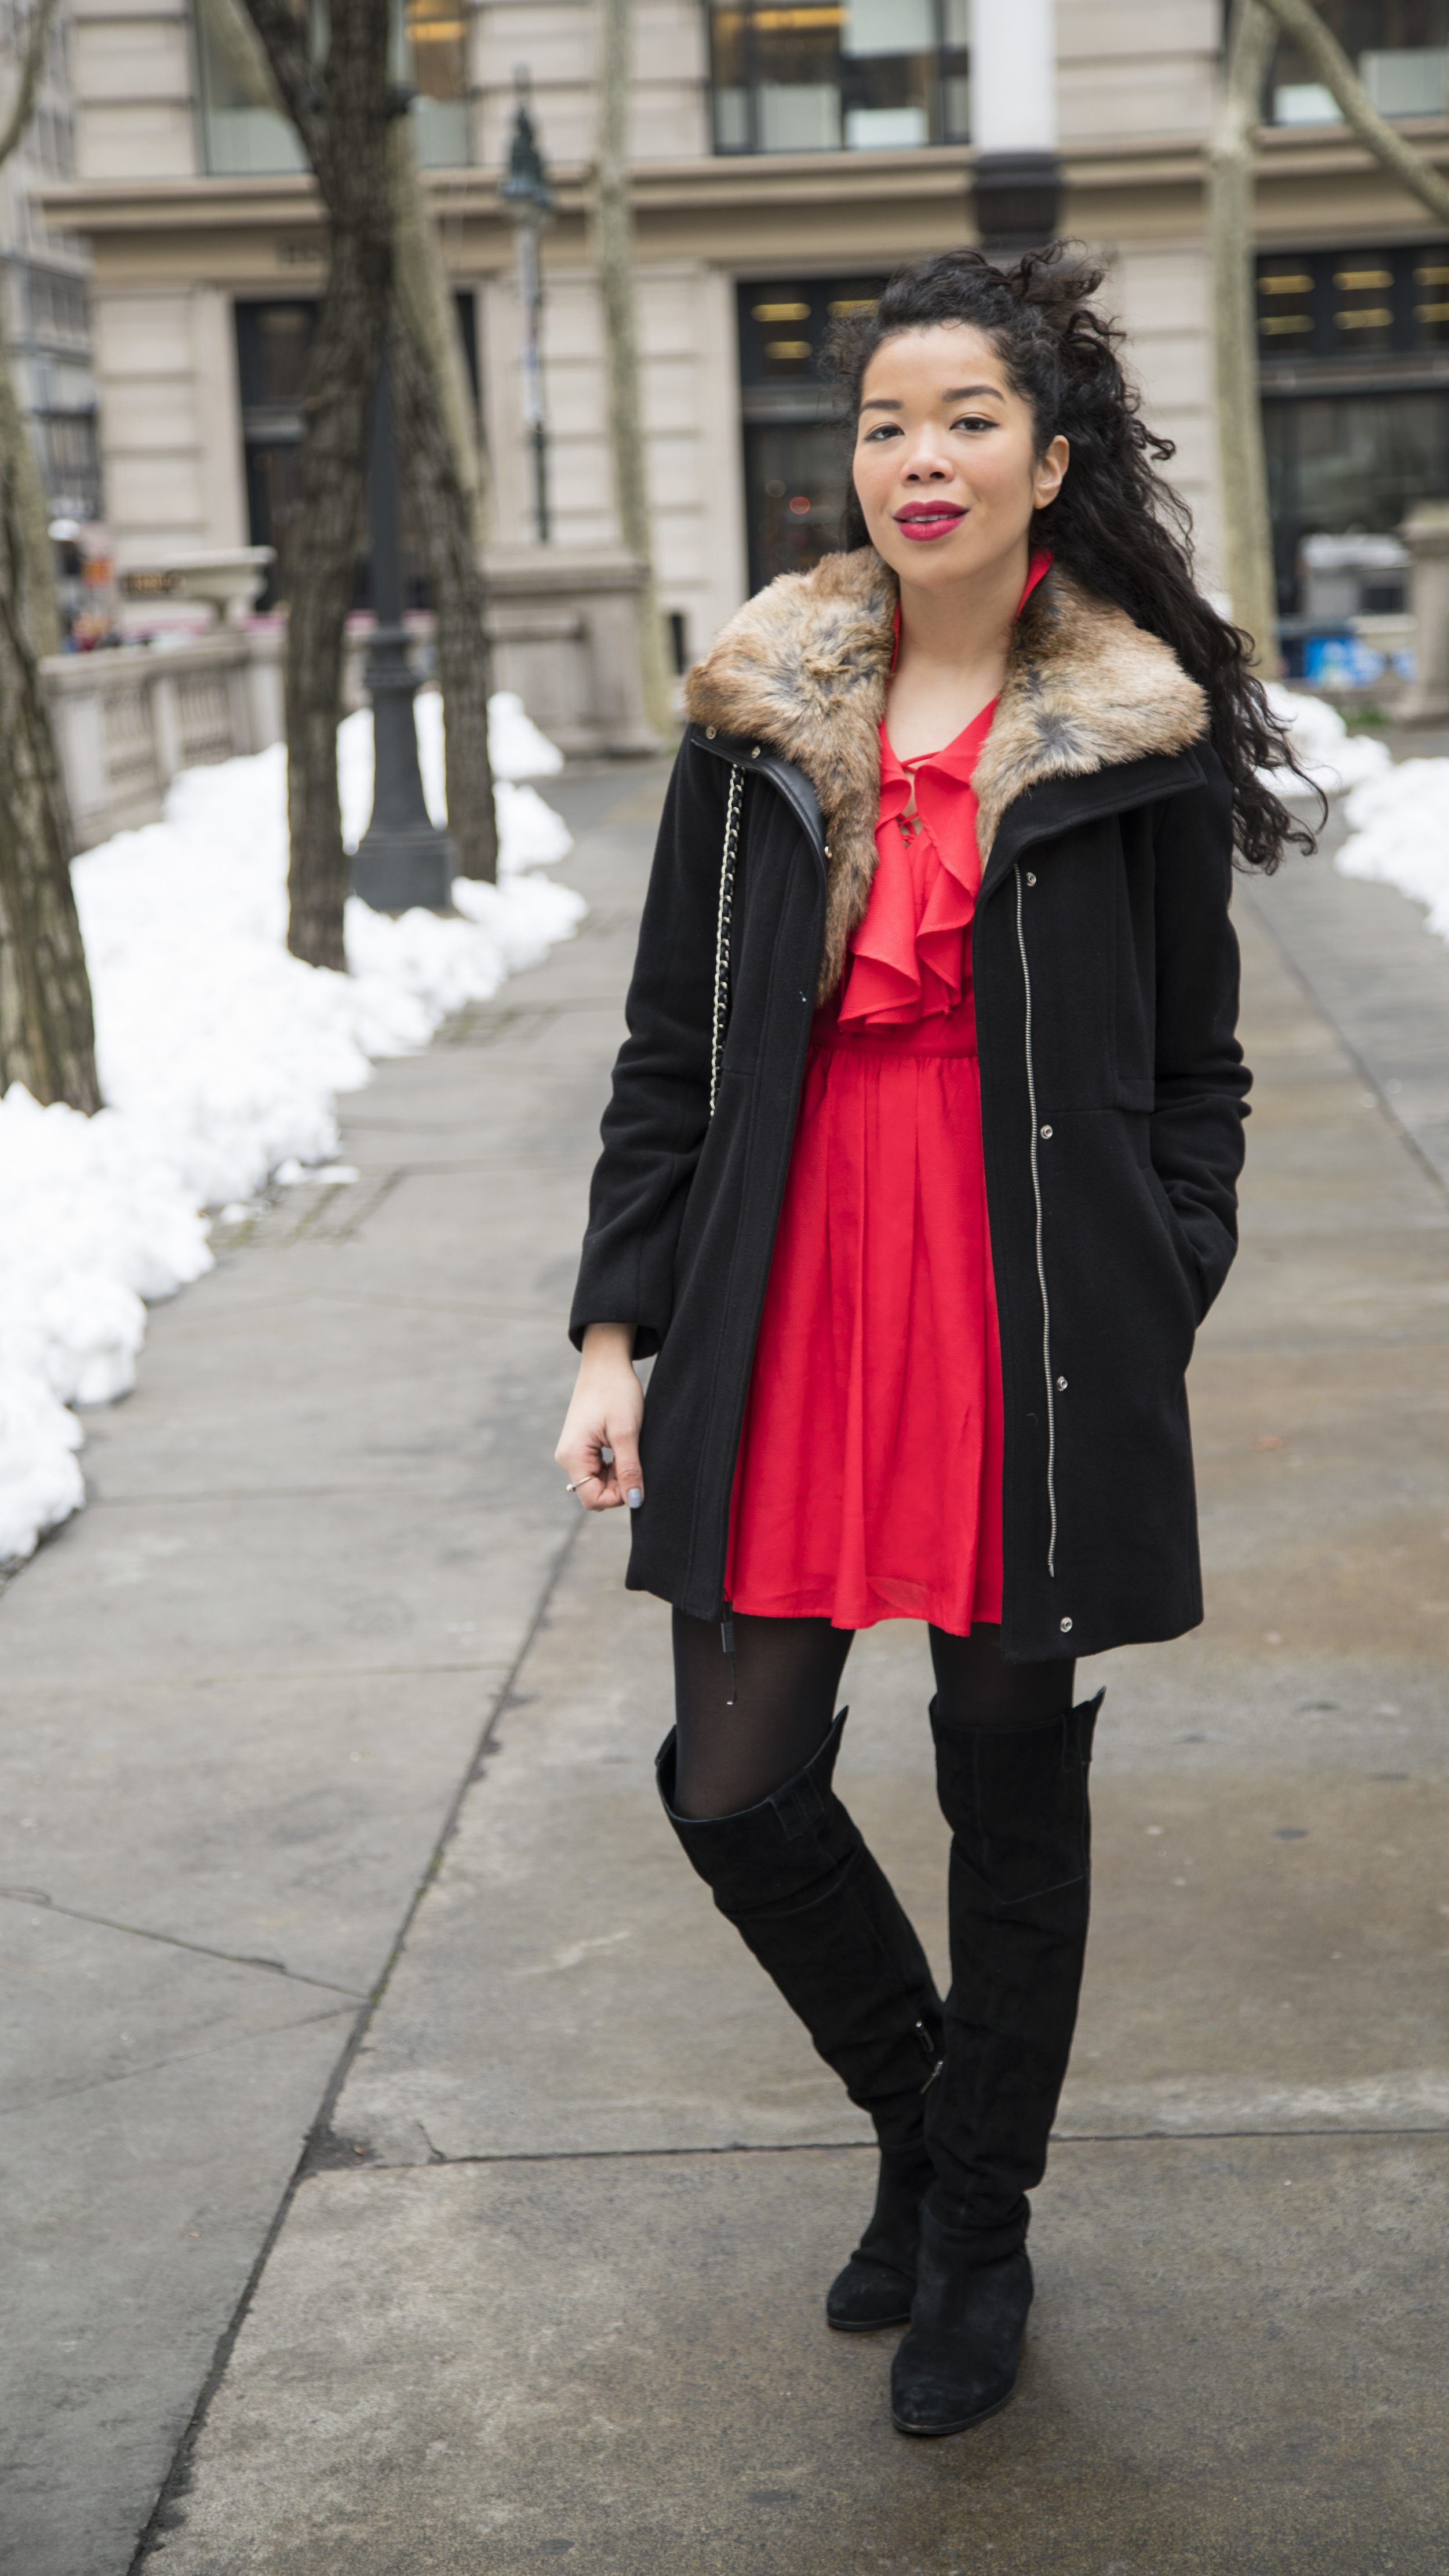 express_red_flare_dress_outfit_ideas.jpg